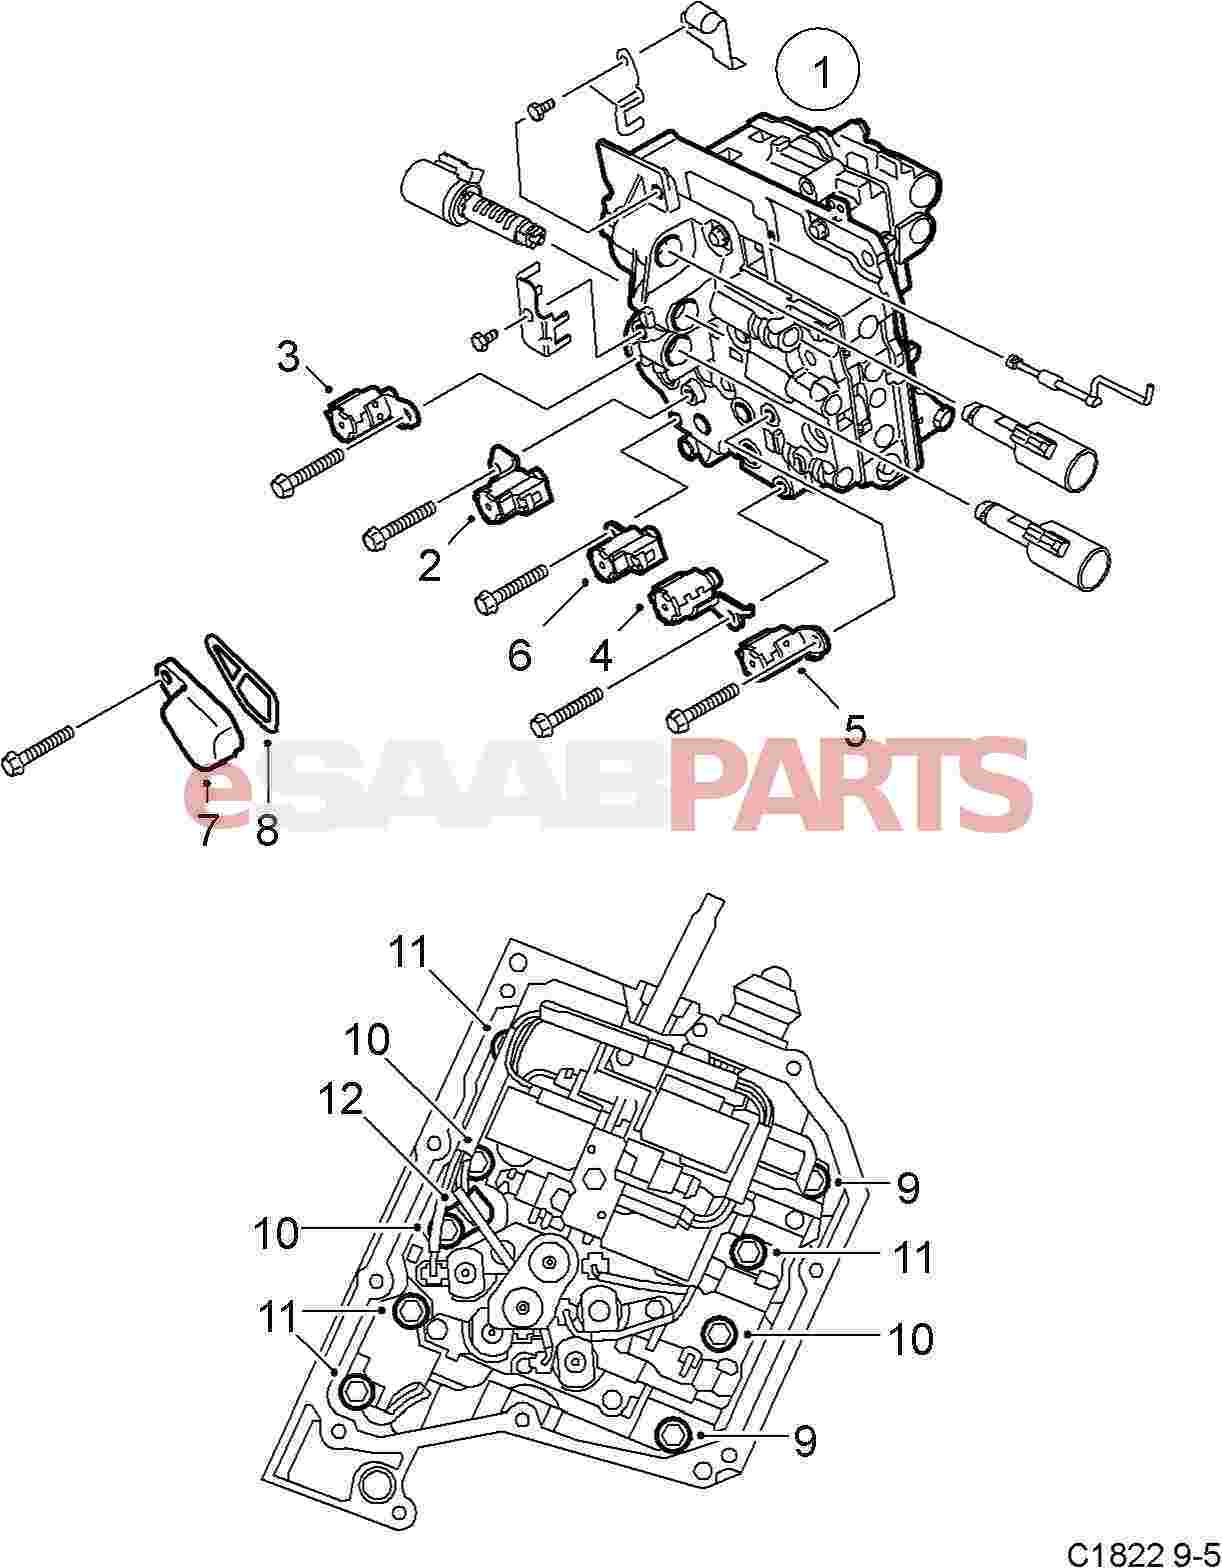 Saab Transmission Diagrams Wiring Manual Gearbox Diagram Esaabparts Com 9 5 9600 U003e Parts Rh Fluid